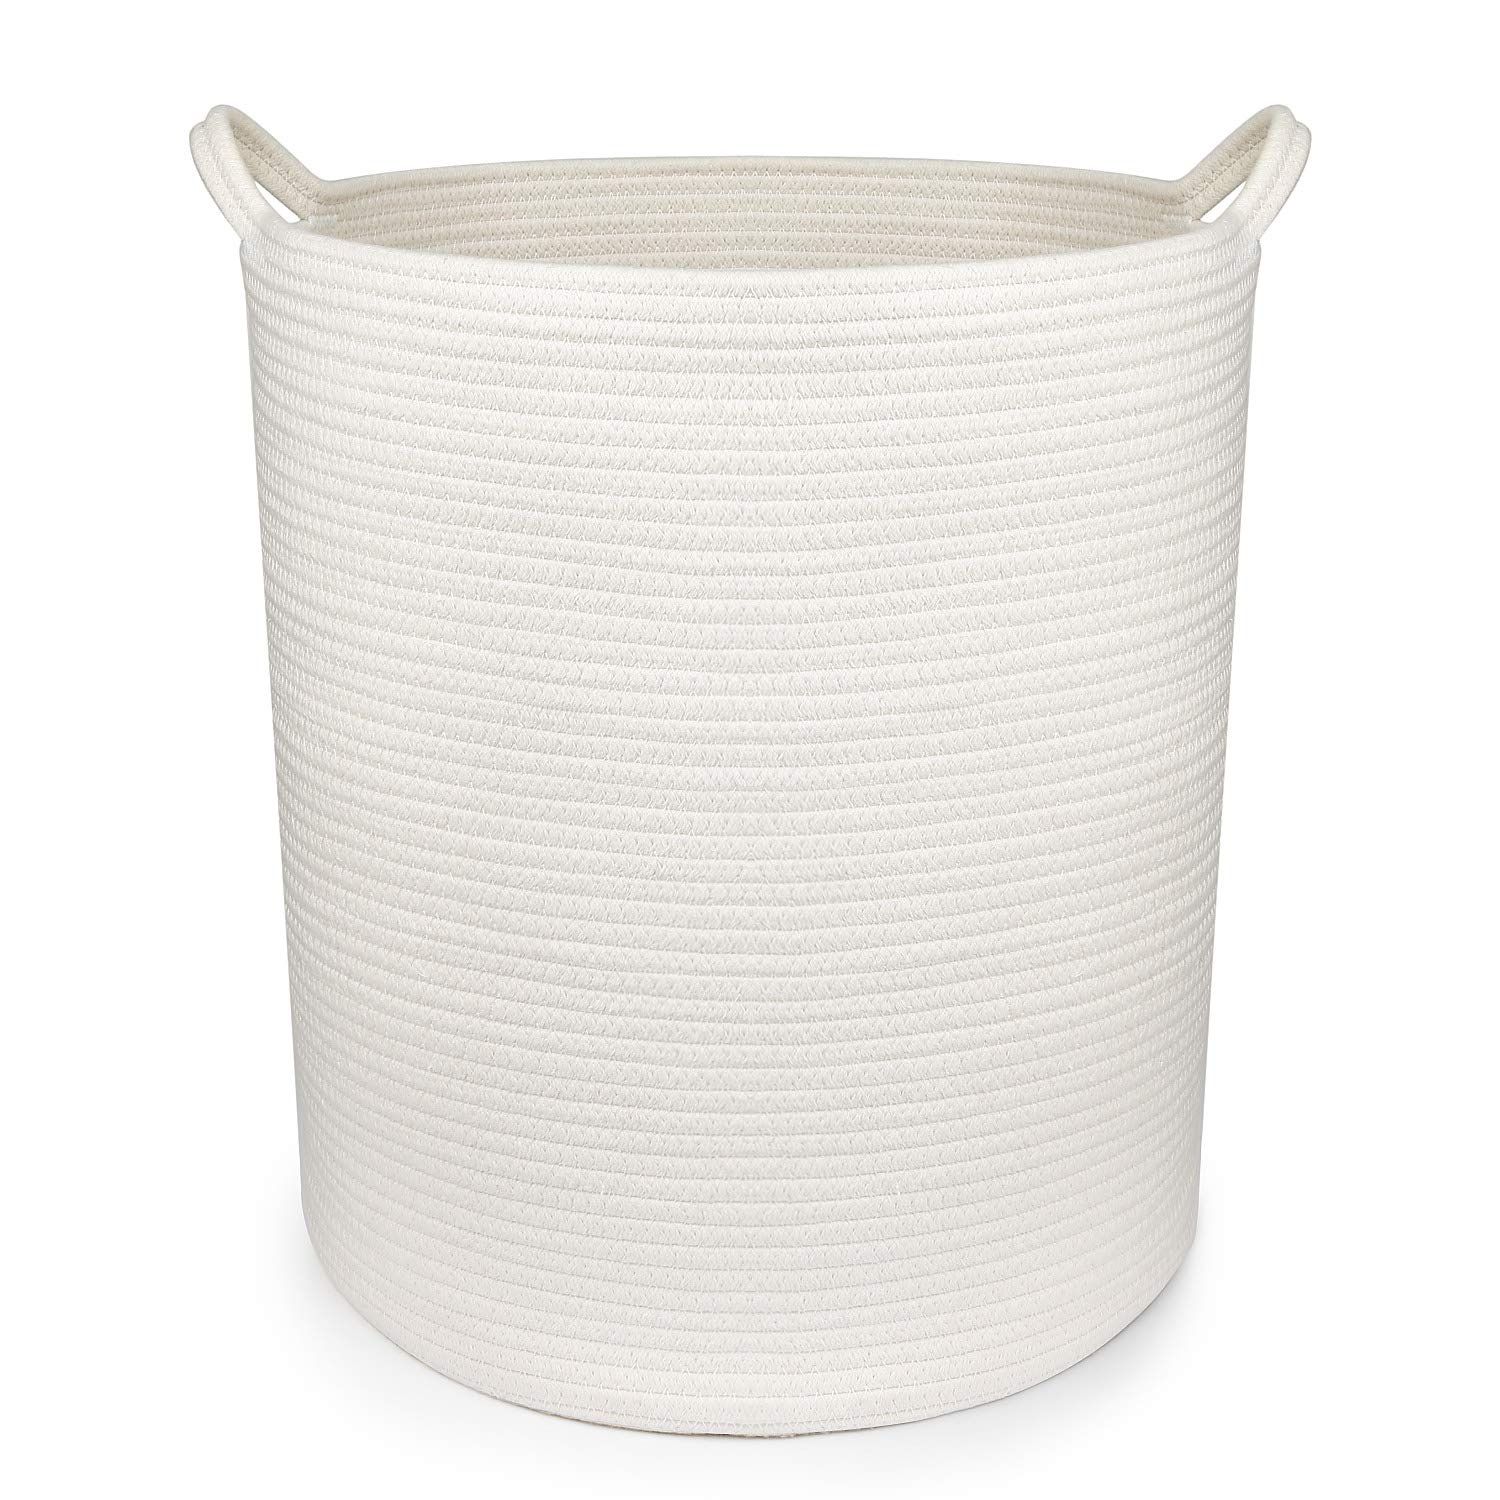 18'' x 16'' Extra Large Storage Baskets Cotton Rope Woven Nursery Bins,Off White (XL) by DUUMI